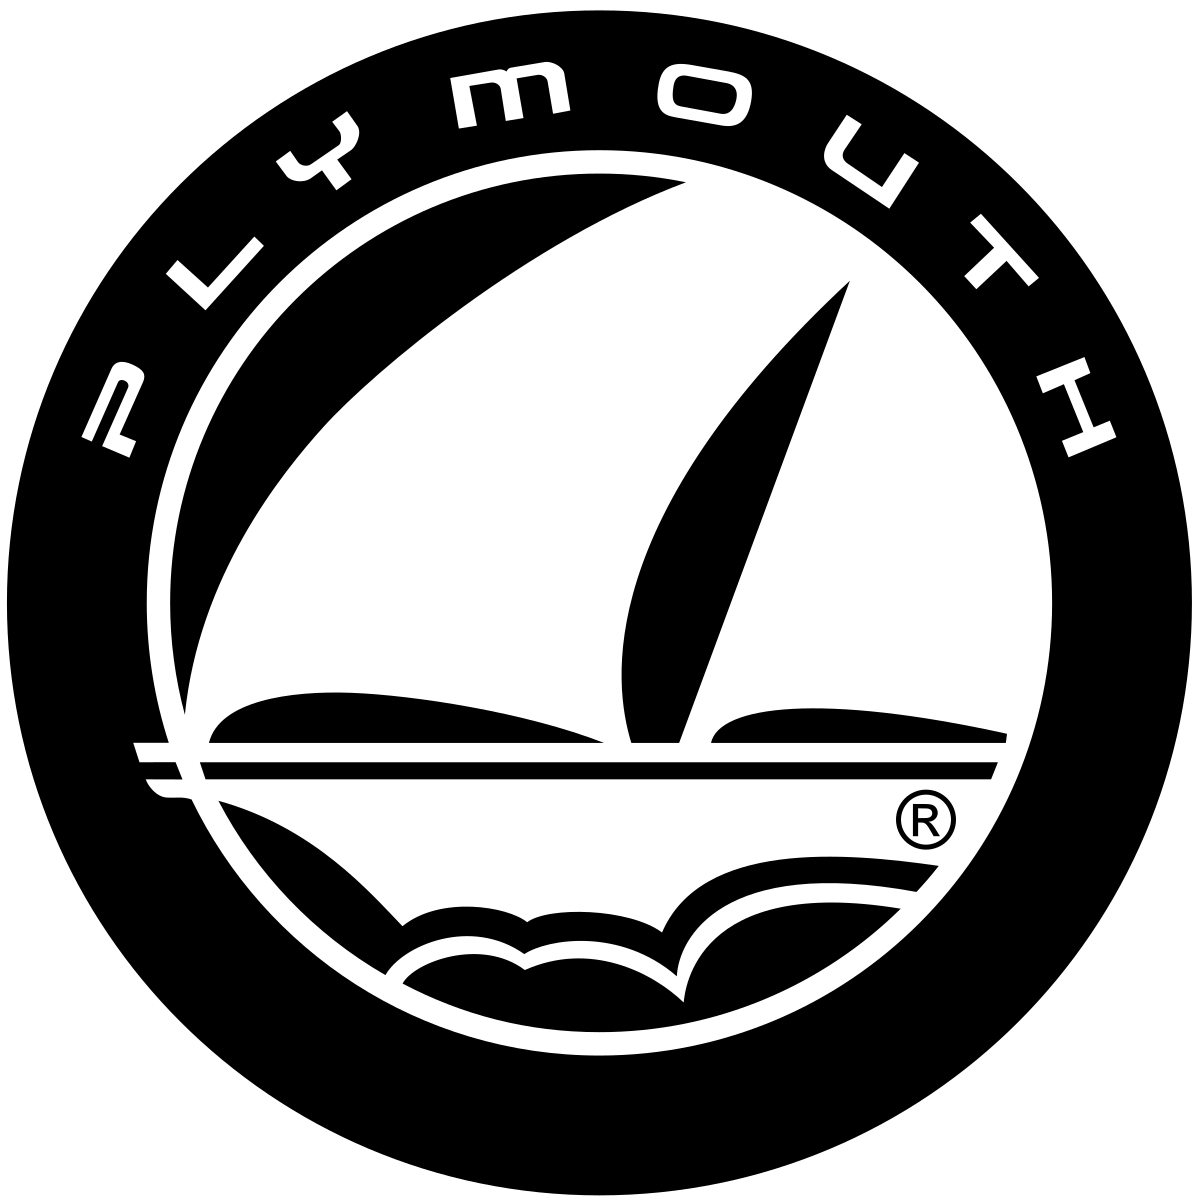 Plymouth (automobile).